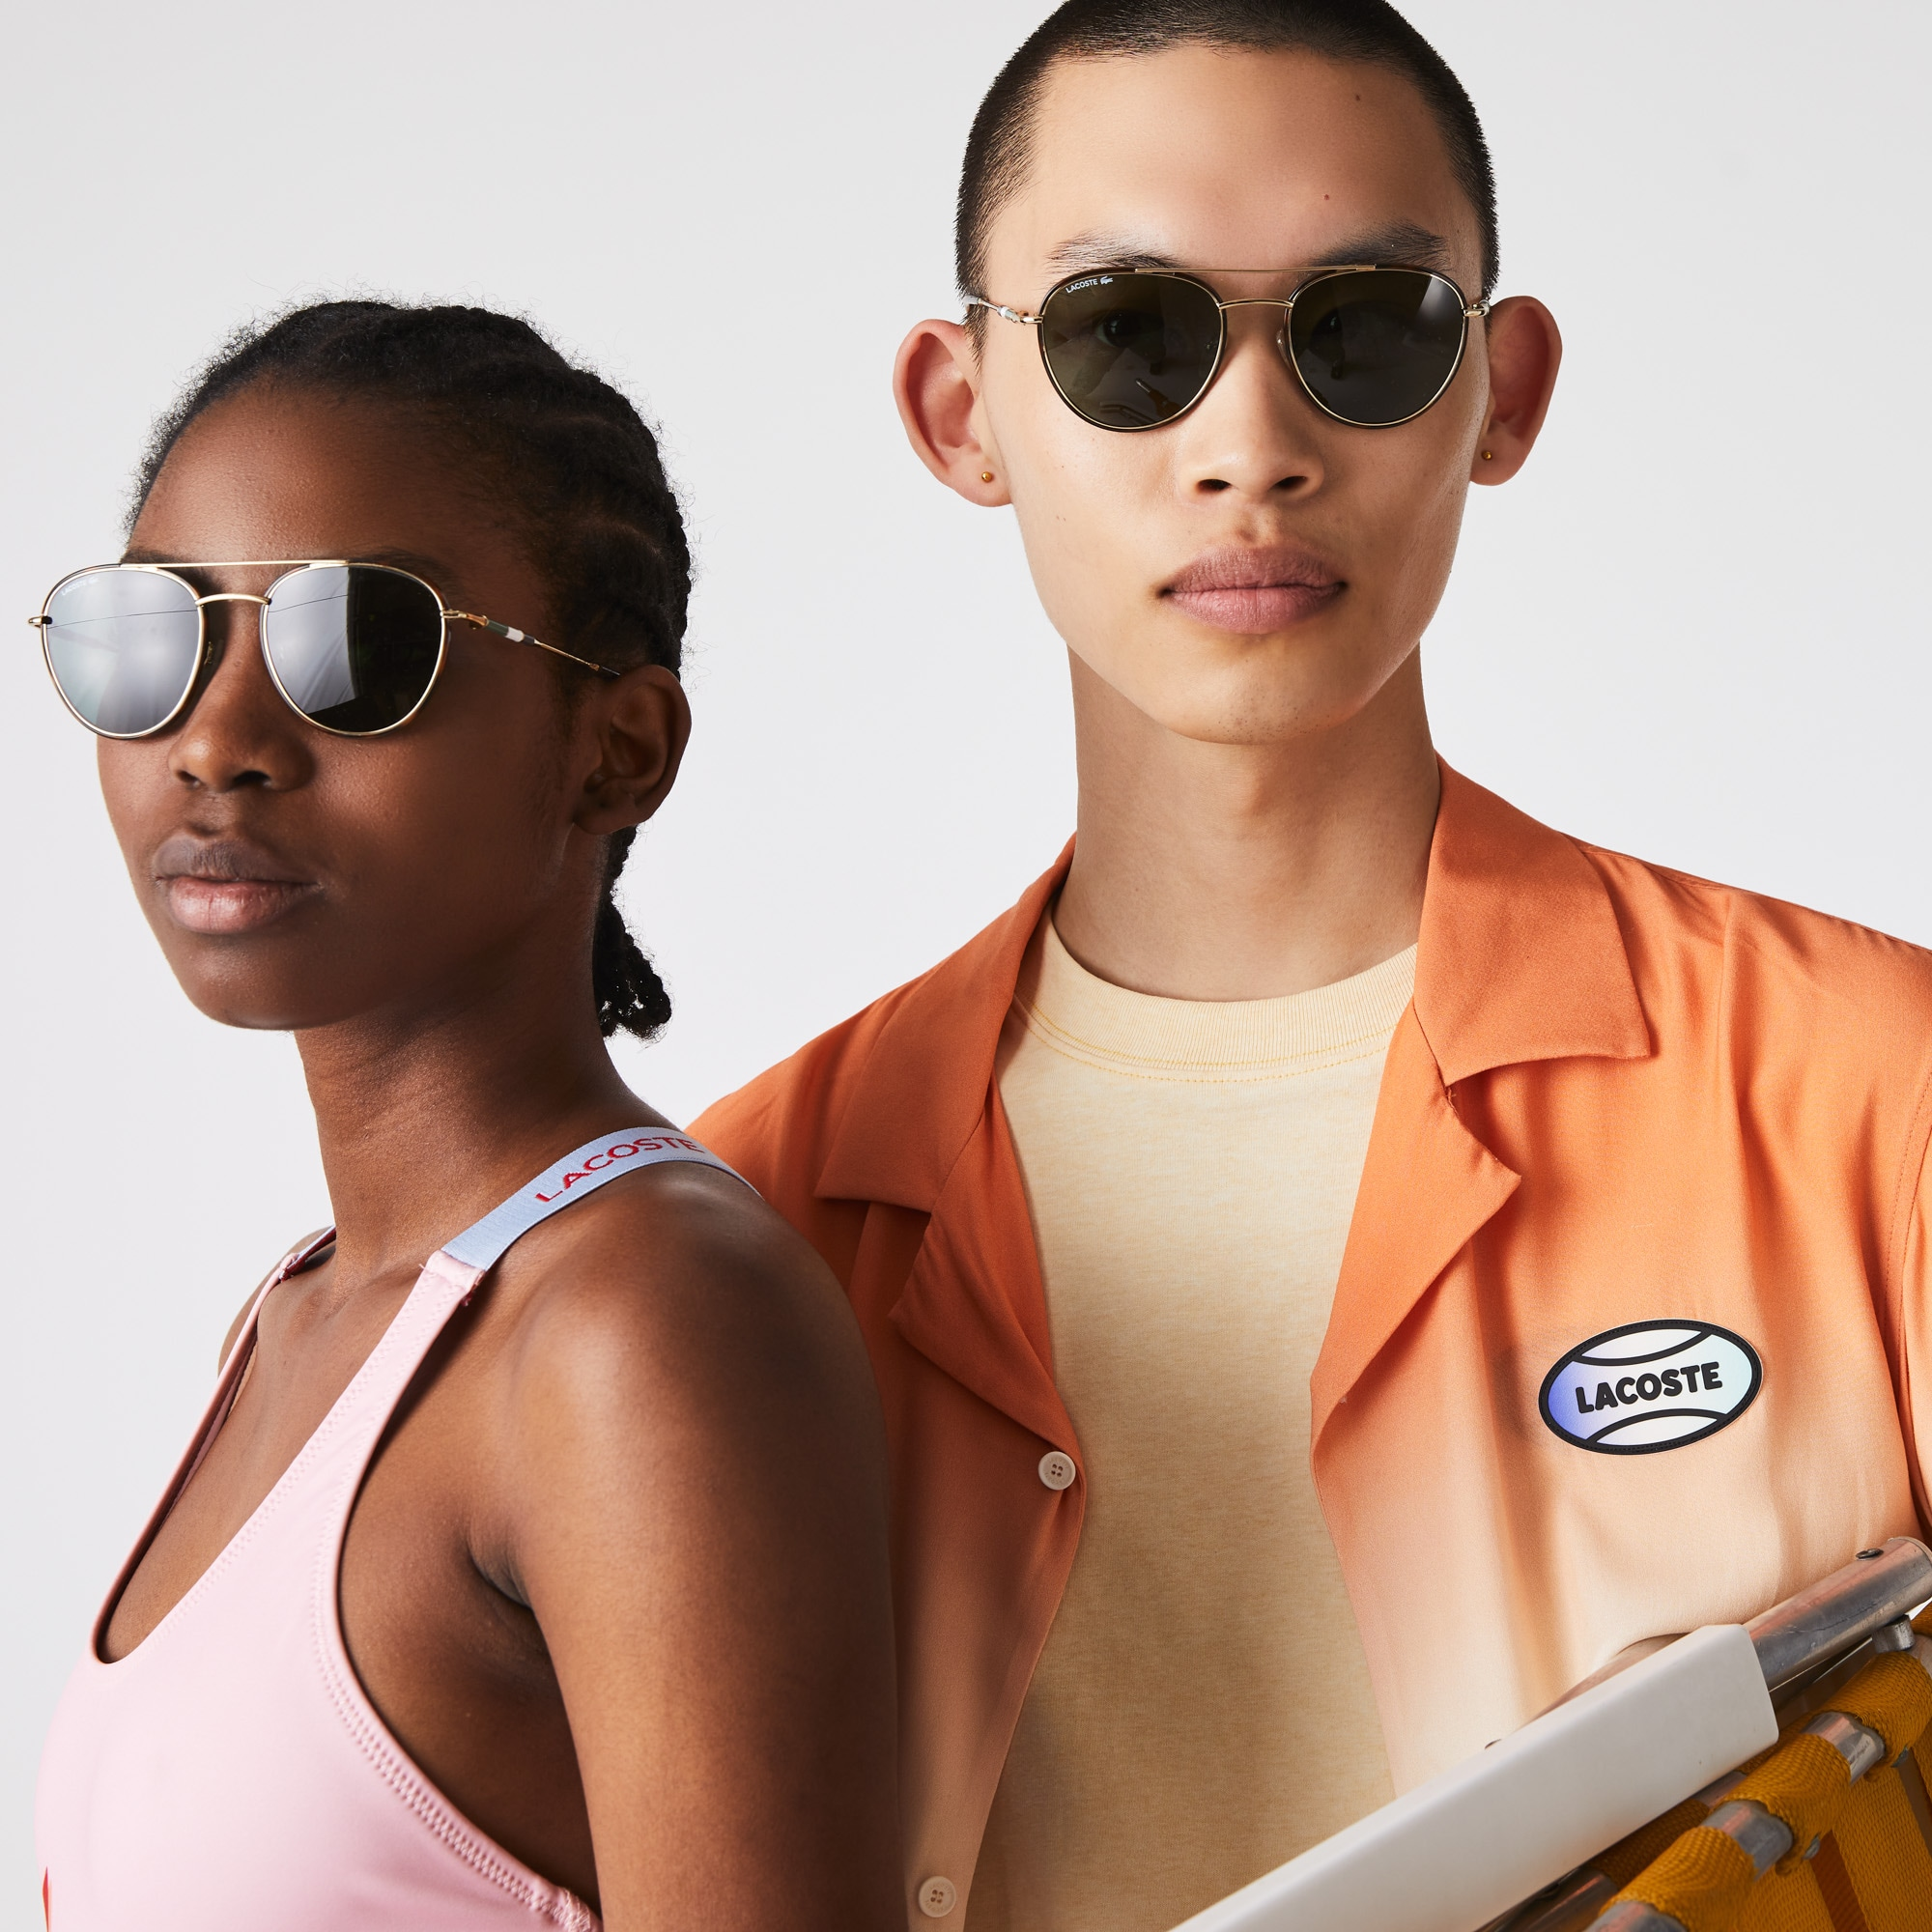 548391c3c47 Men s Sunglasses